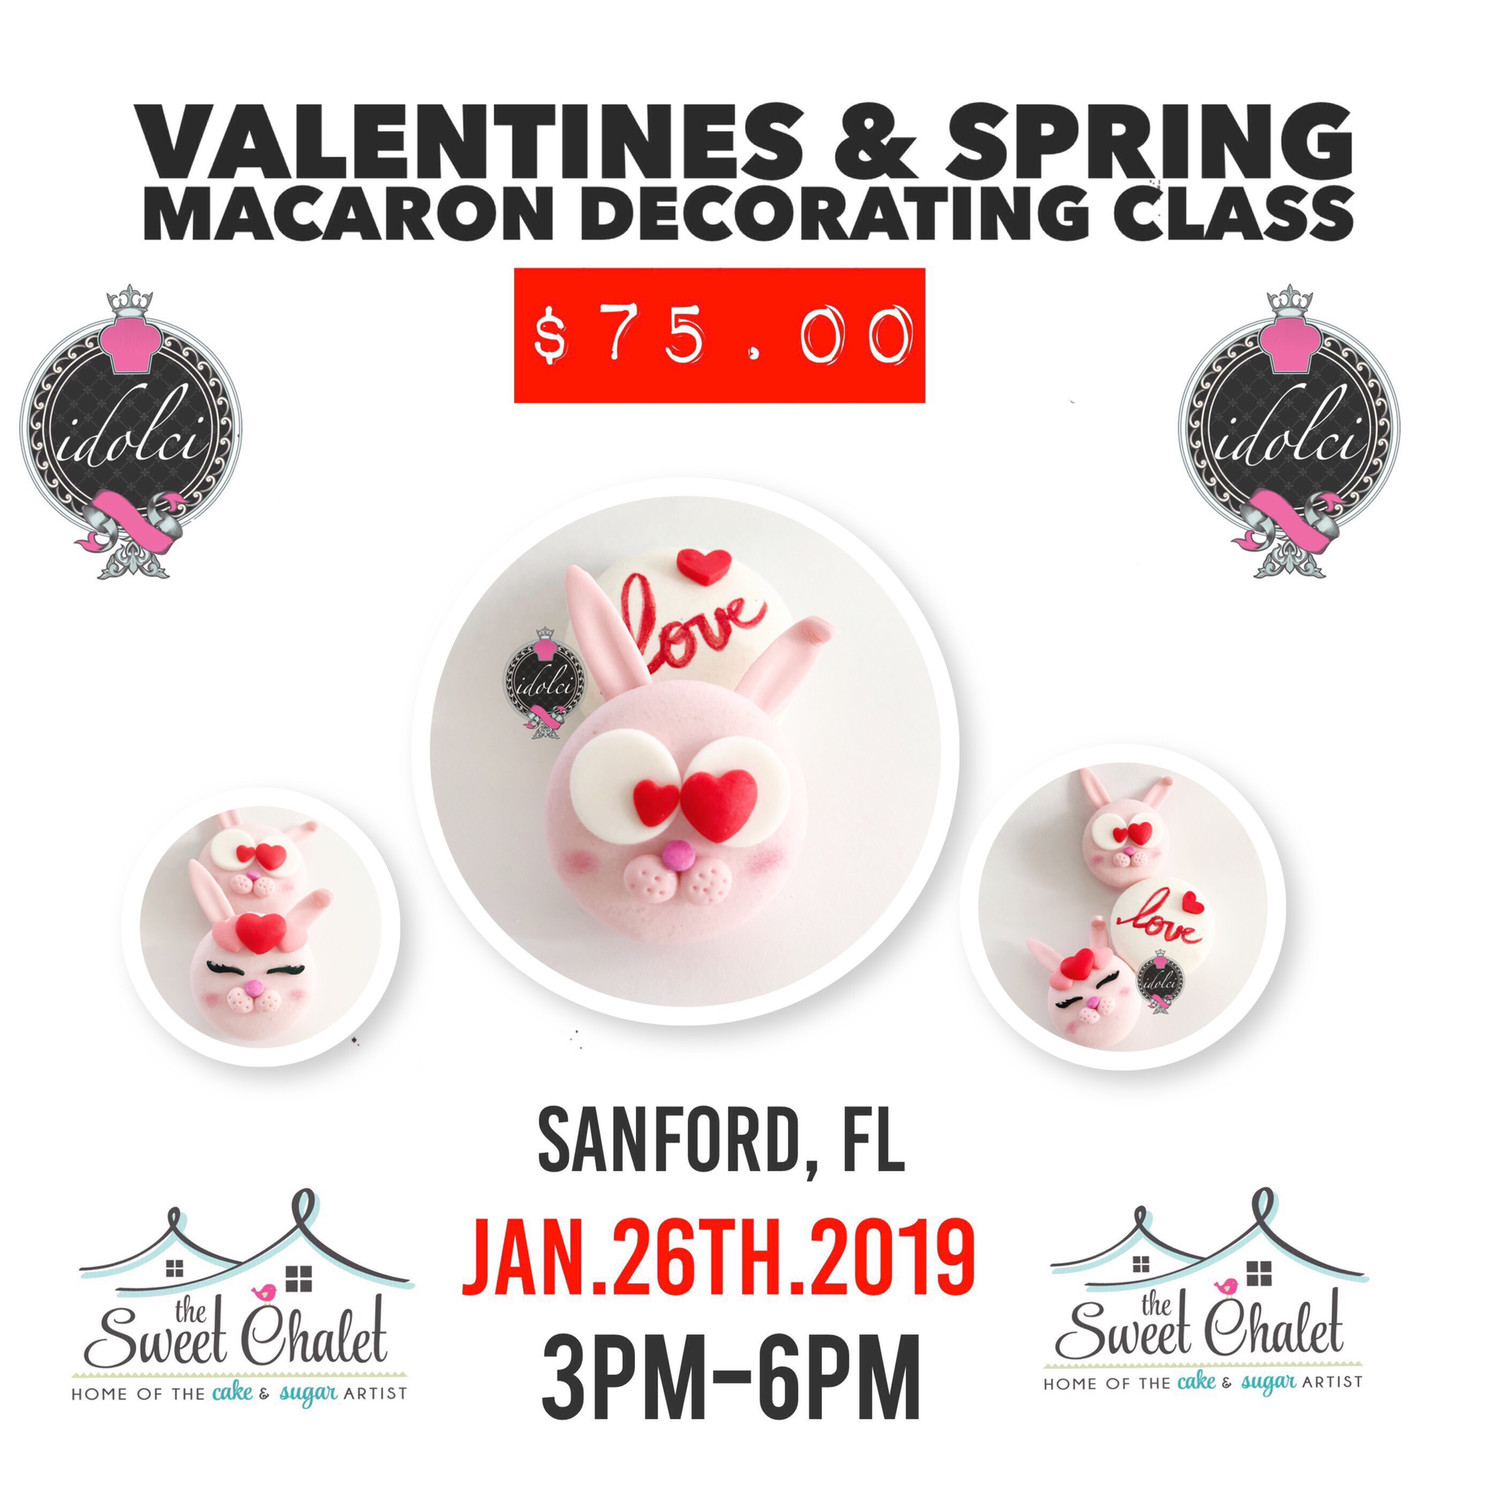 Valentines & Spring Macaron Decorating Class January 26 3 PM - 6 PM